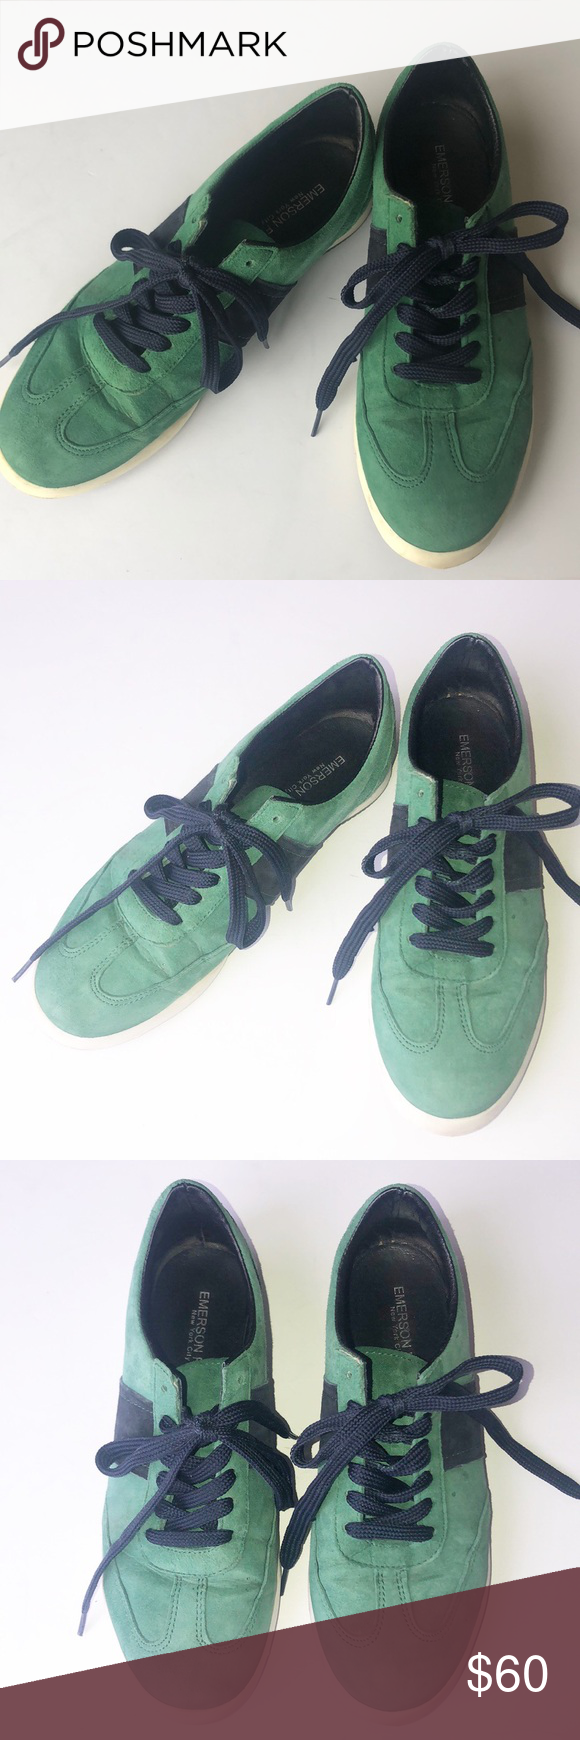 Emerson Fry NYC green/Navy sneakers 7 Worn only once, these are in EUC.  Emerson Fry green/Navy sneakers in size 7. Please ask all questions prior to purchasing.  I ❤️ offers!!! Emerson Fry Shoes Athletic Shoes #emersonfry Emerson Fry NYC green/Navy sneakers 7 Worn only once, these are in EUC.  Emerson Fry green/Navy sneakers in size 7. Please ask all questions prior to purchasing.  I ❤️ offers!!! Emerson Fry Shoes Athletic Shoes #emersonfry Emerson Fry NYC green/Navy sneakers 7 Worn onl #emersonfry